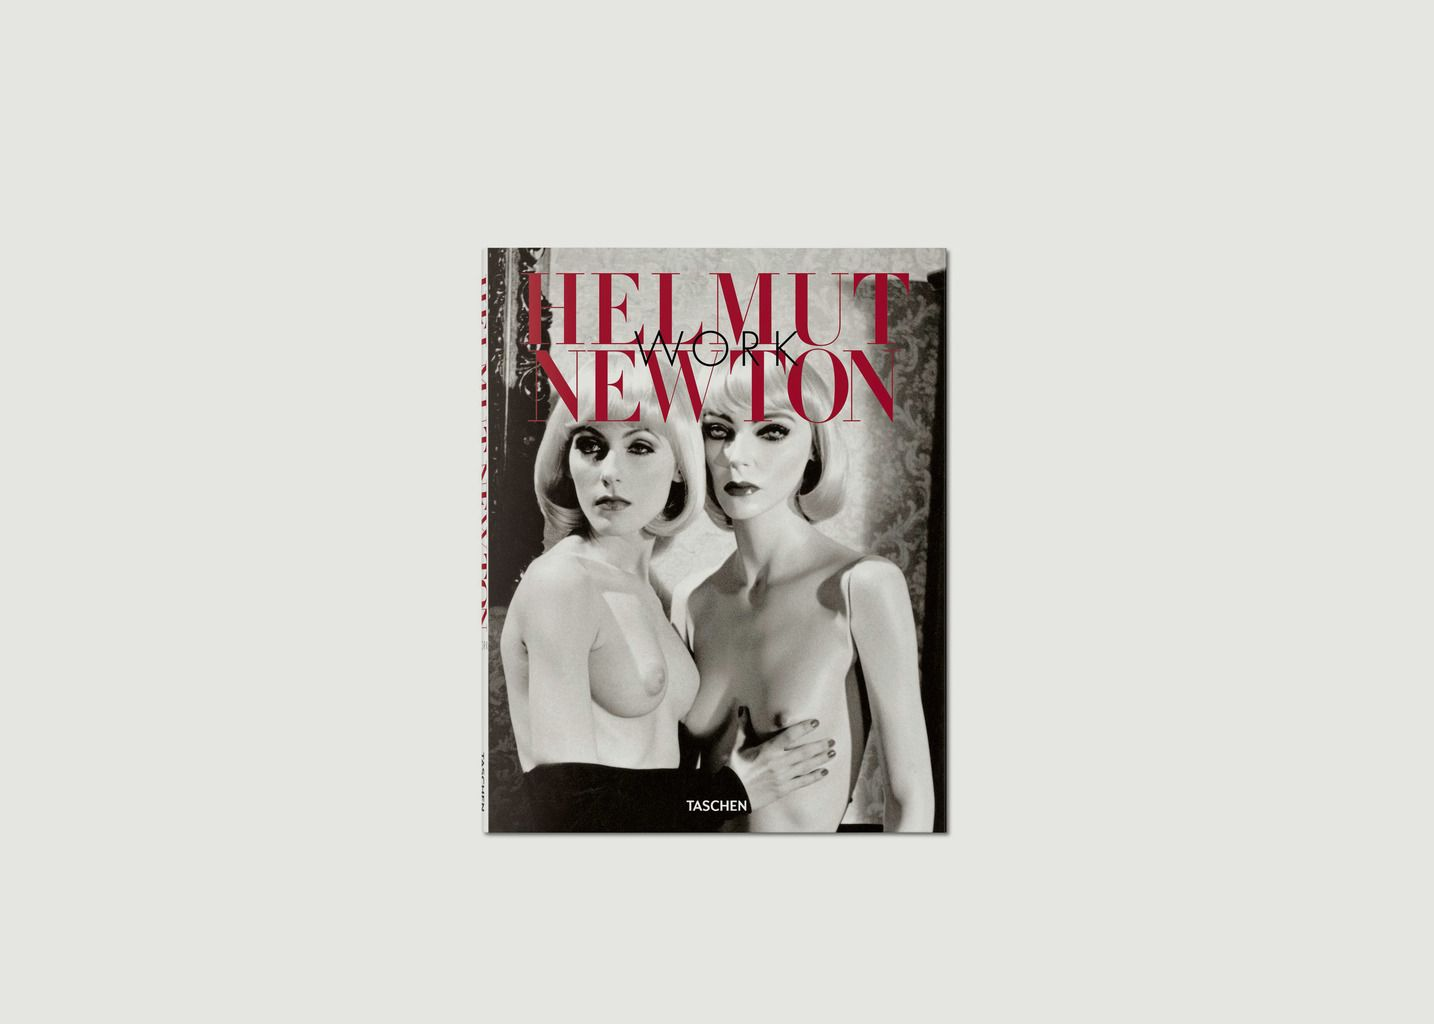 Livre Newton Work 2nd Edition - Taschen